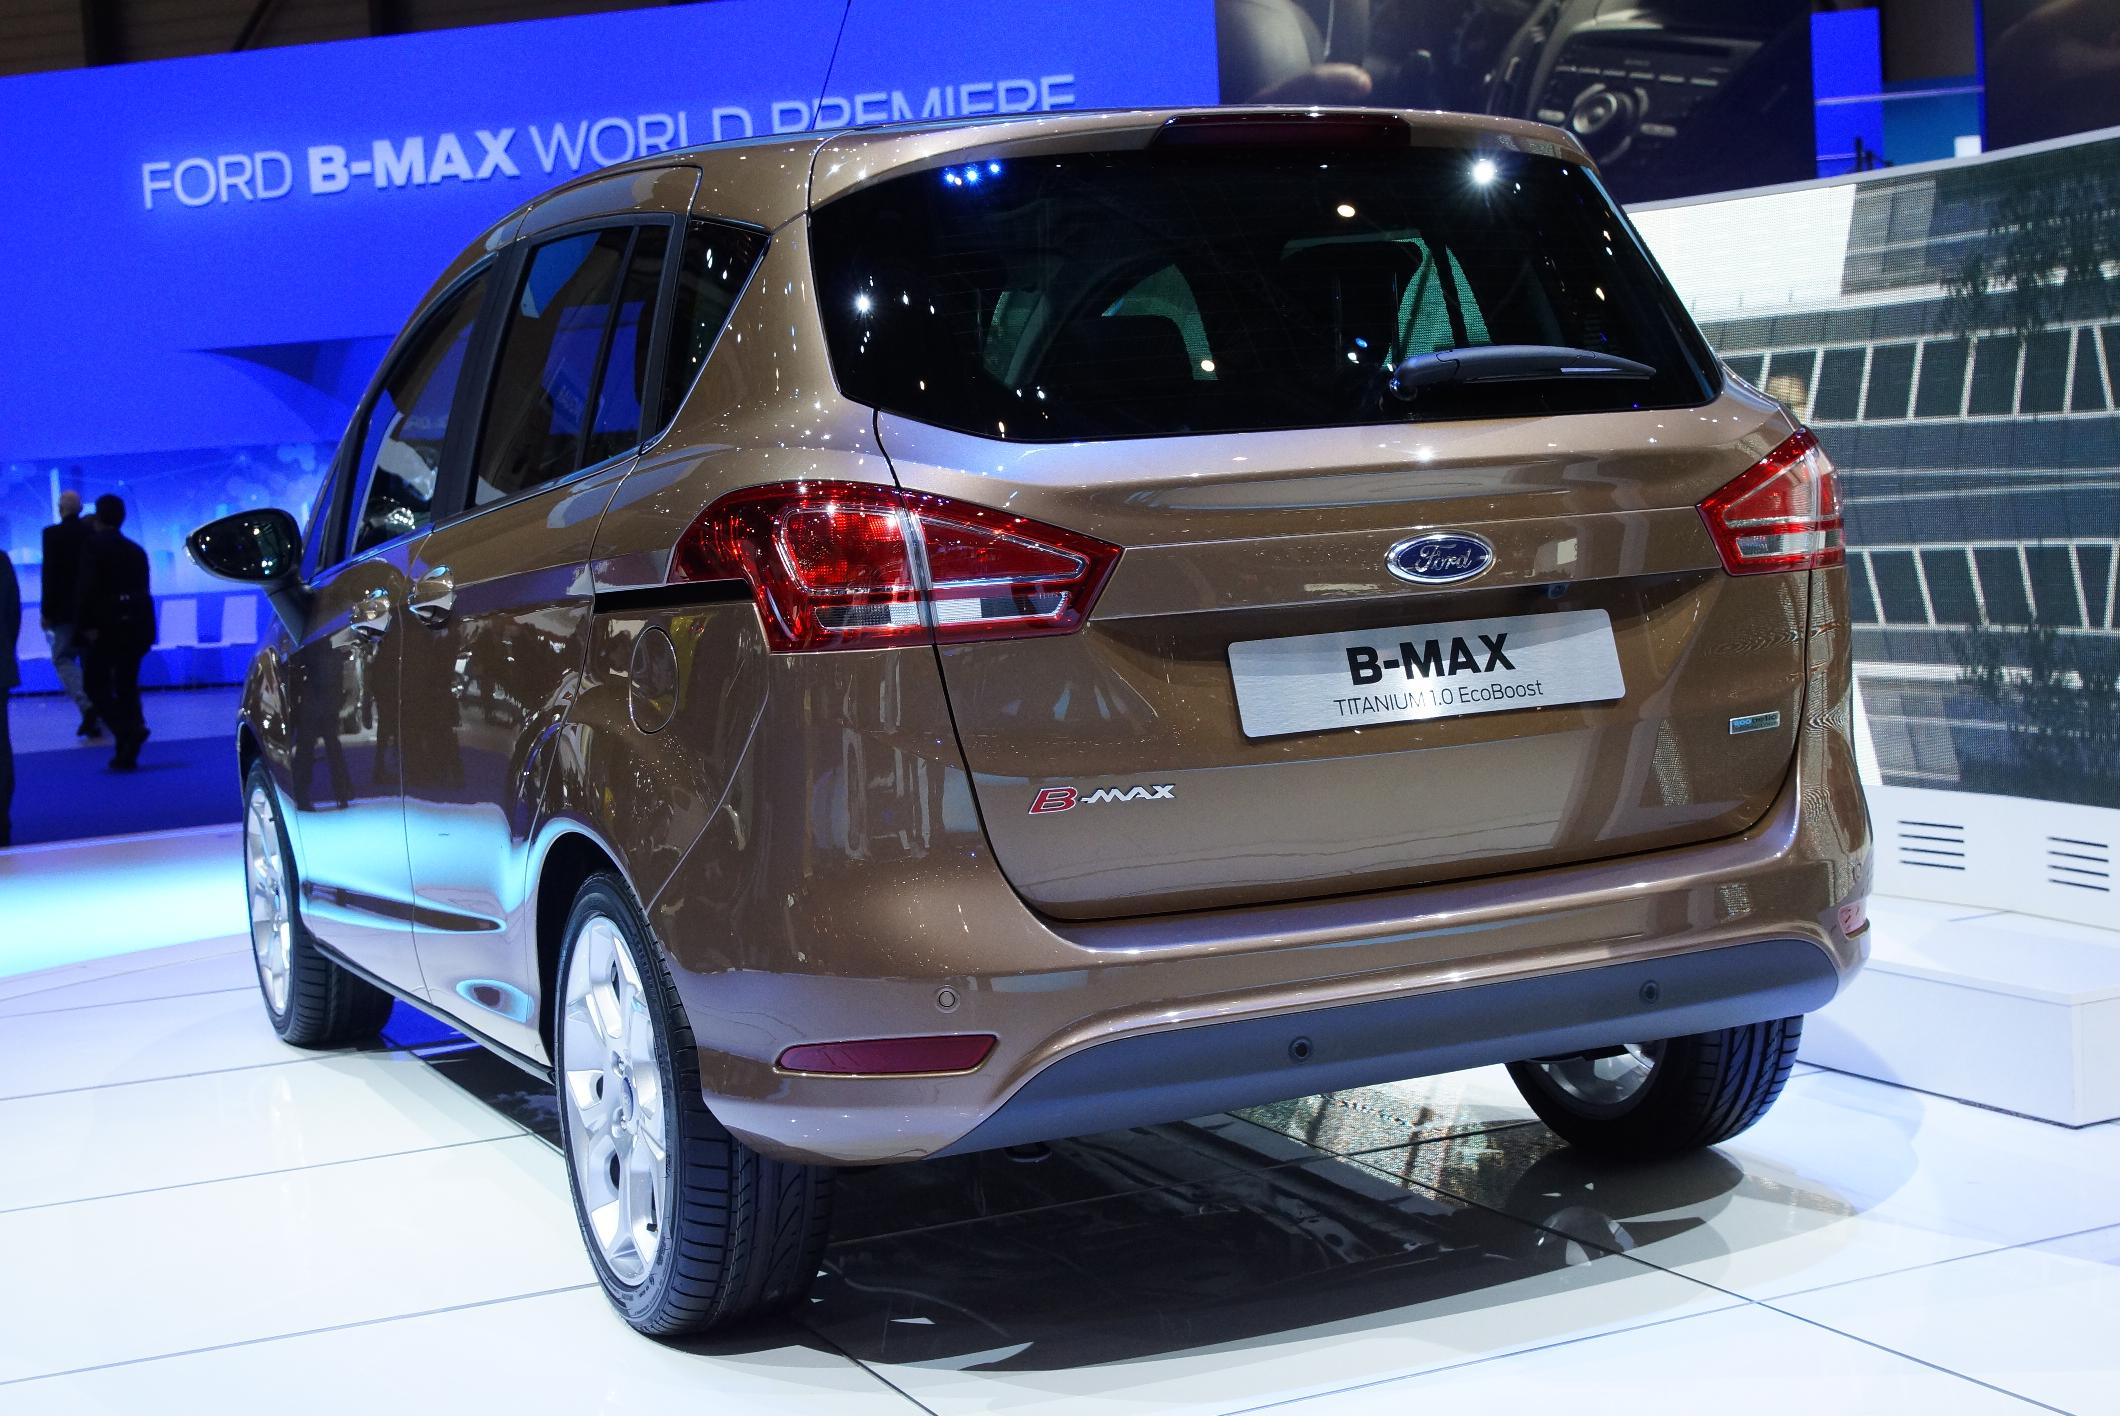 Ford B-Max Geneva 2012 Rear